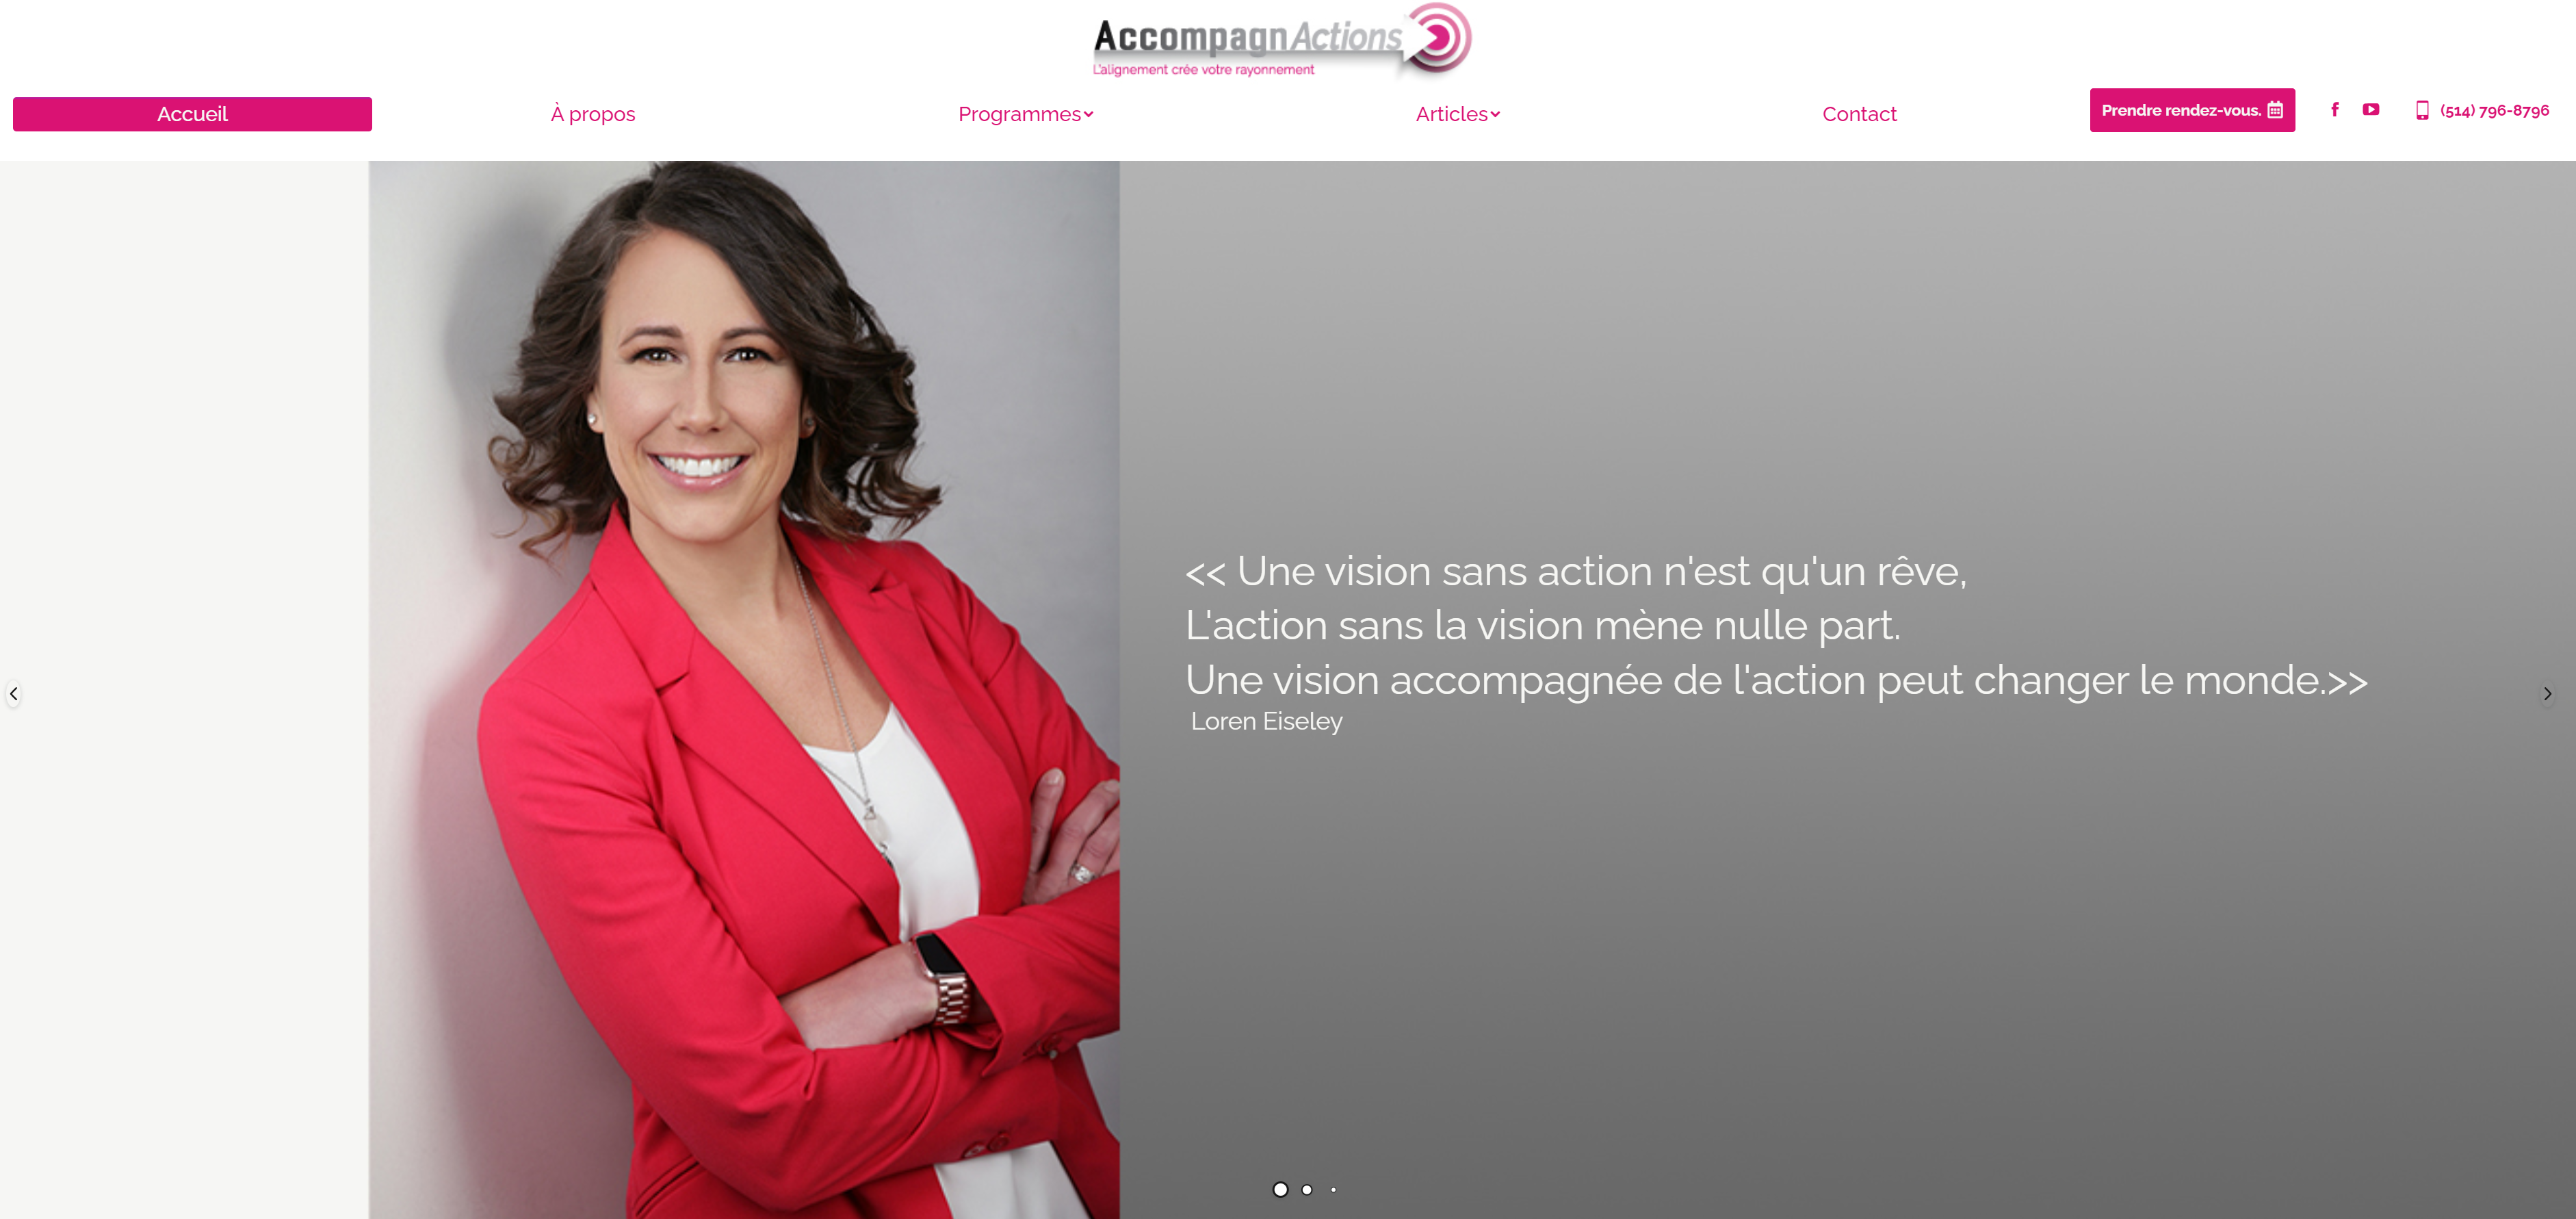 accompagnactions